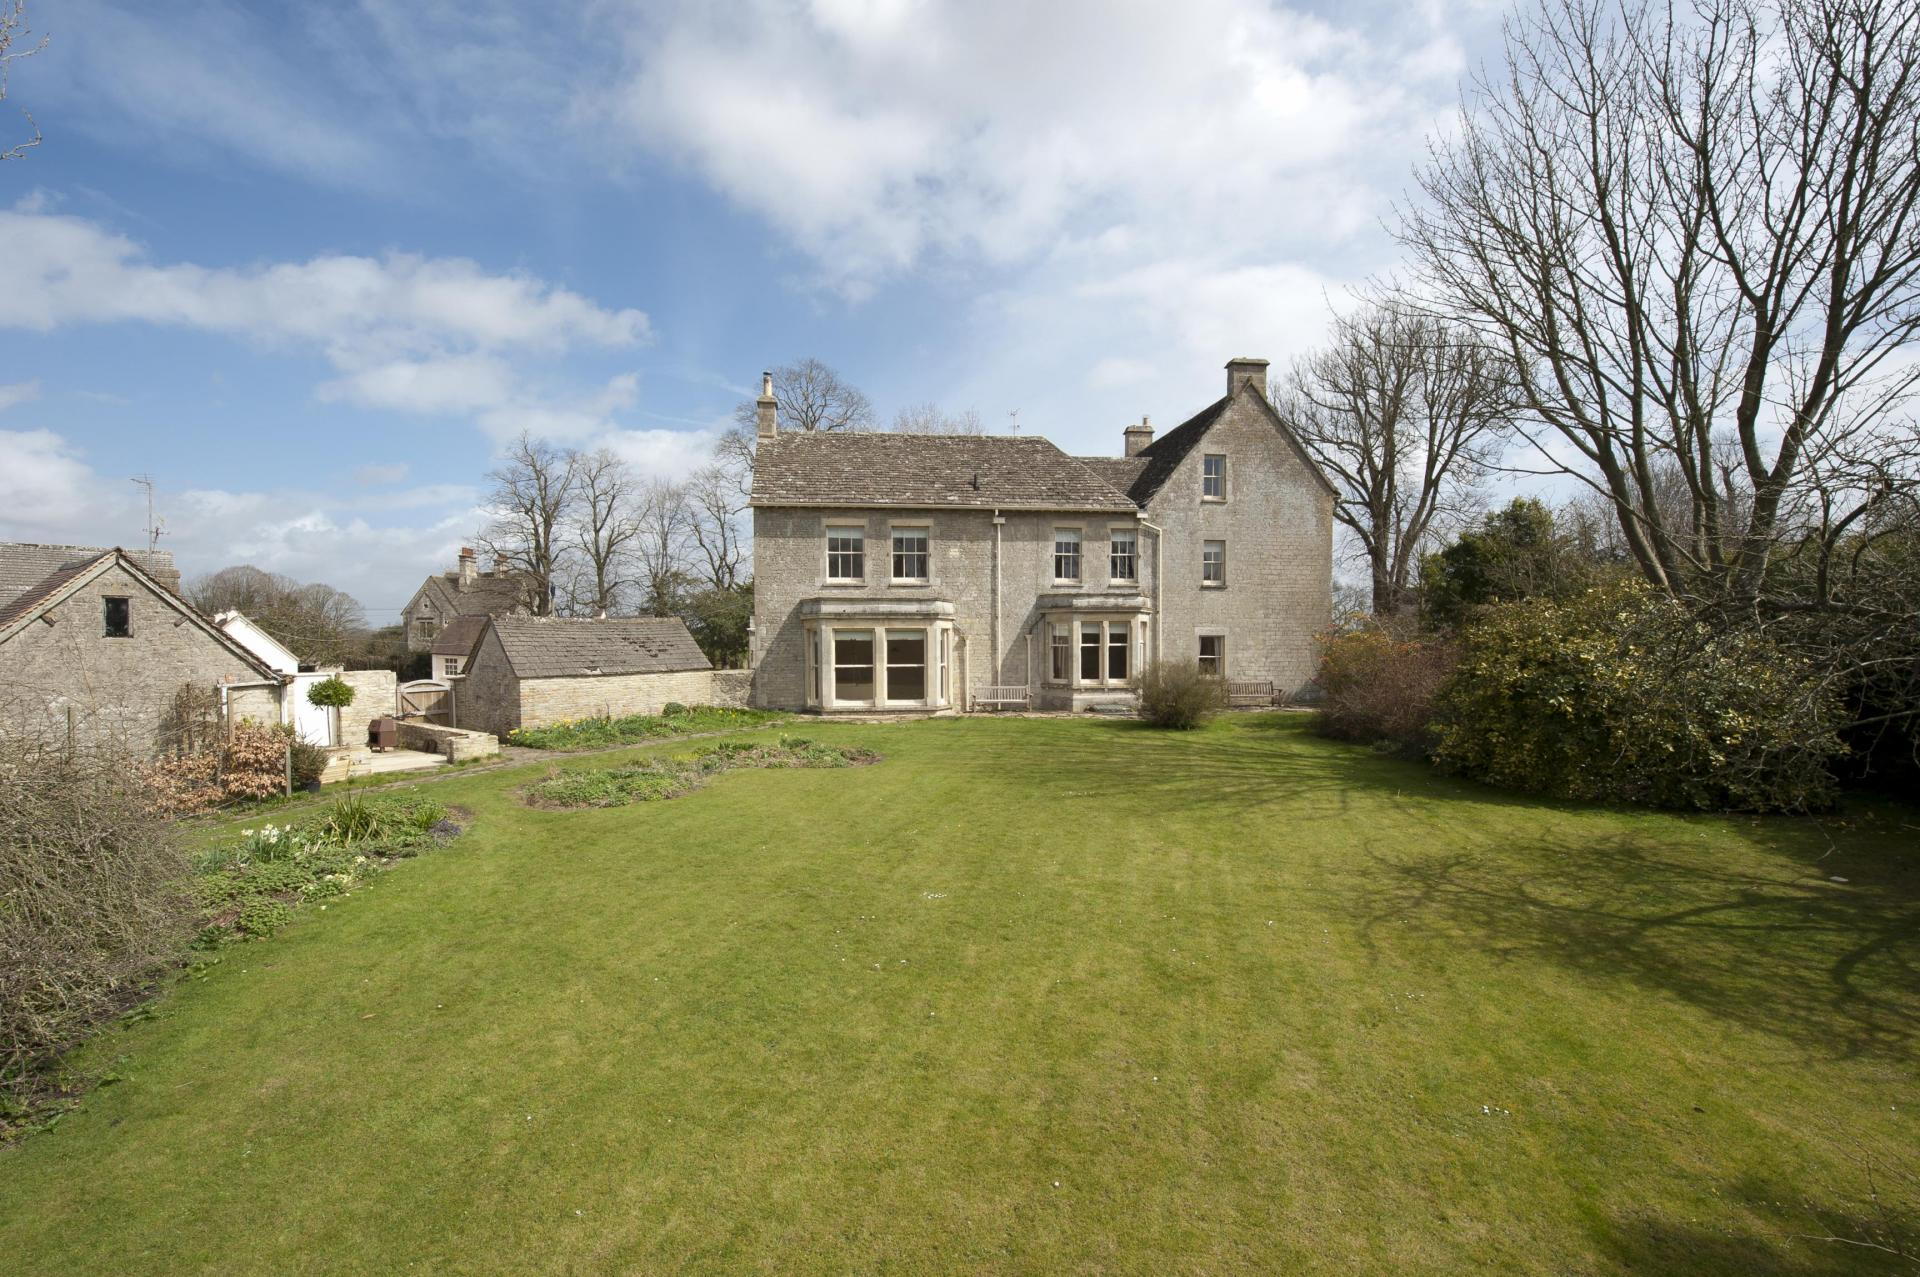 Property For Sale In Cirencester Area